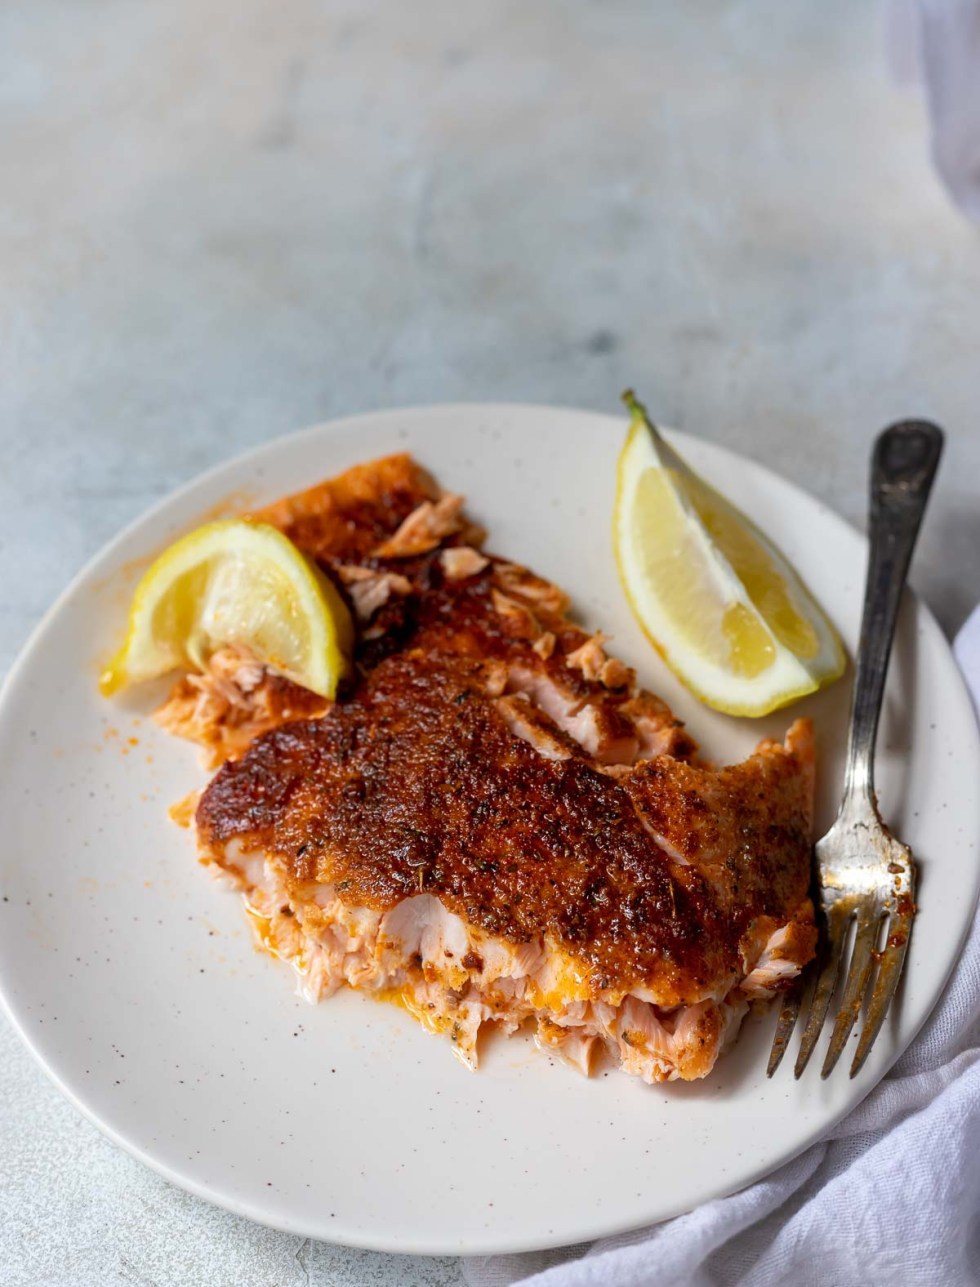 oven baked blackened salmon served on white plate